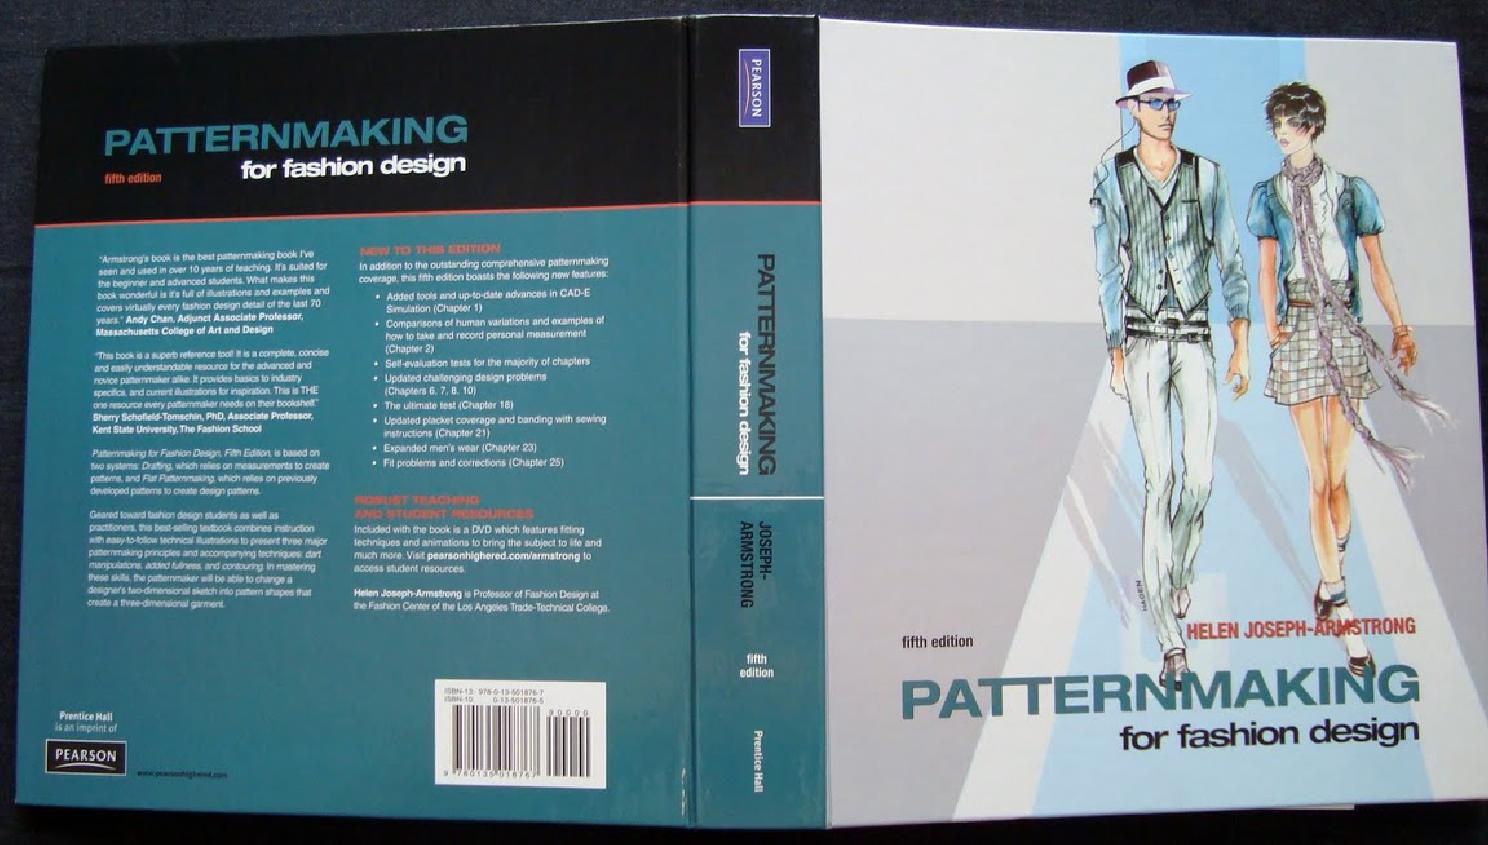 Patternmaking for fashion design 5th edition ebook 72